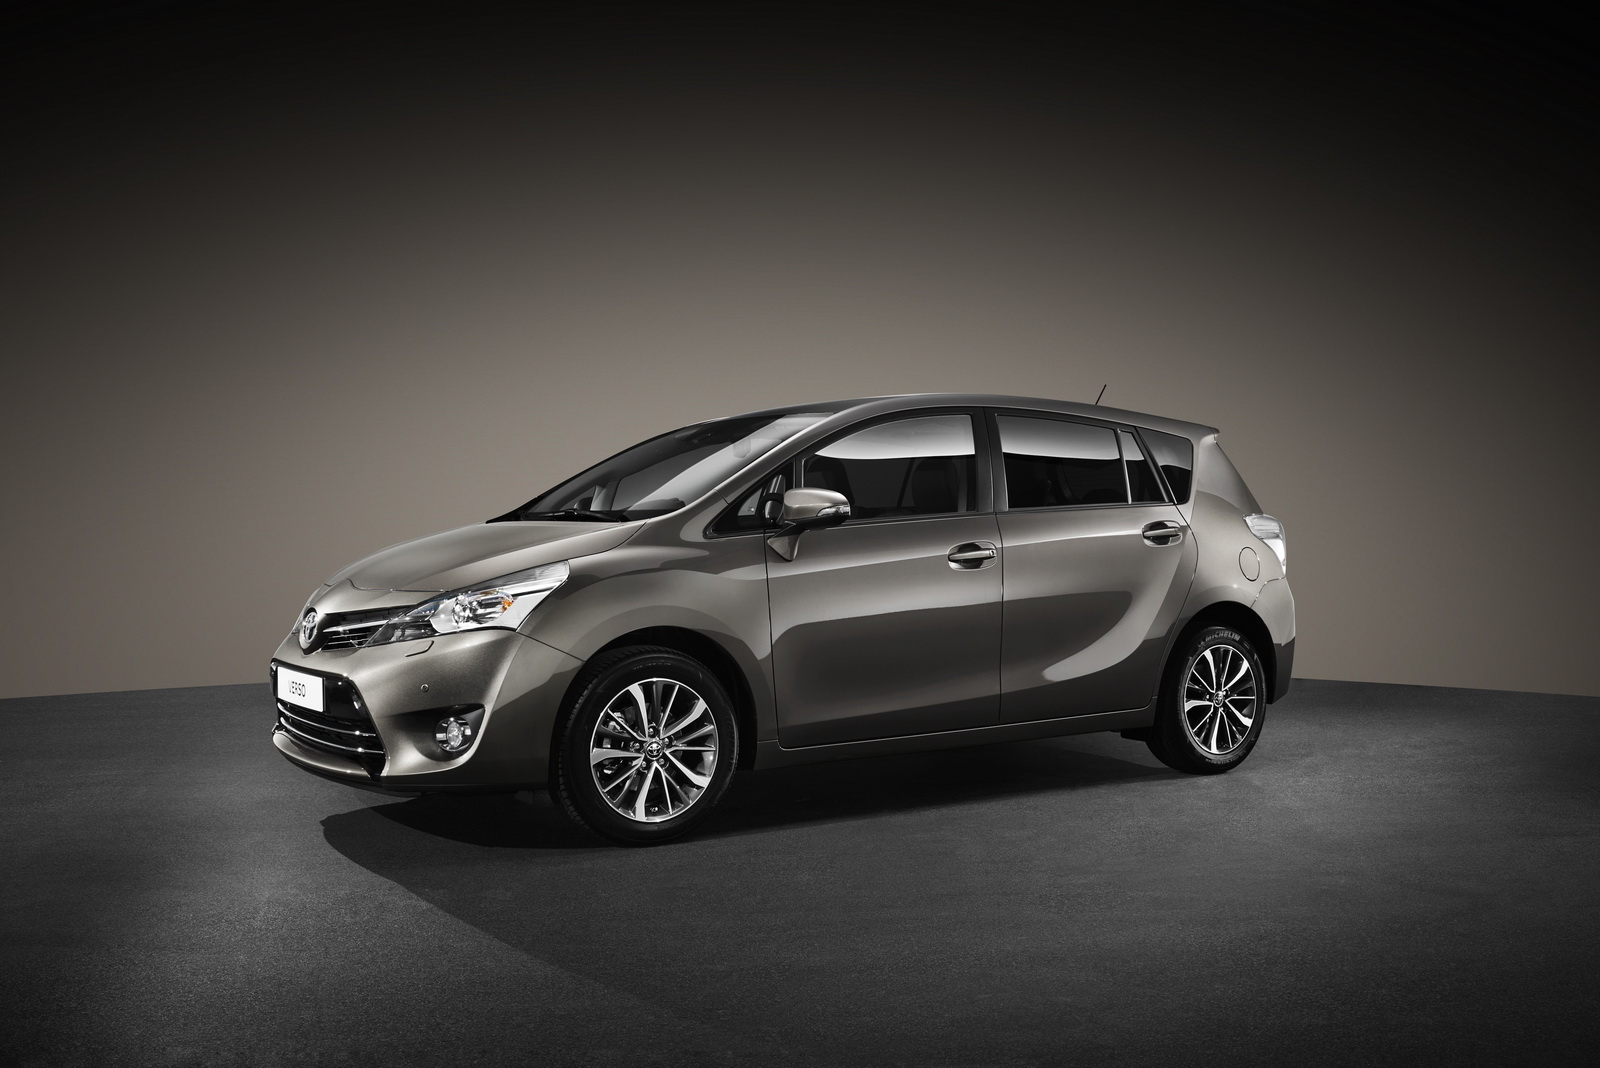 2016 toyota verso mpv gets upgraded interior and safety sense carscoops. Black Bedroom Furniture Sets. Home Design Ideas